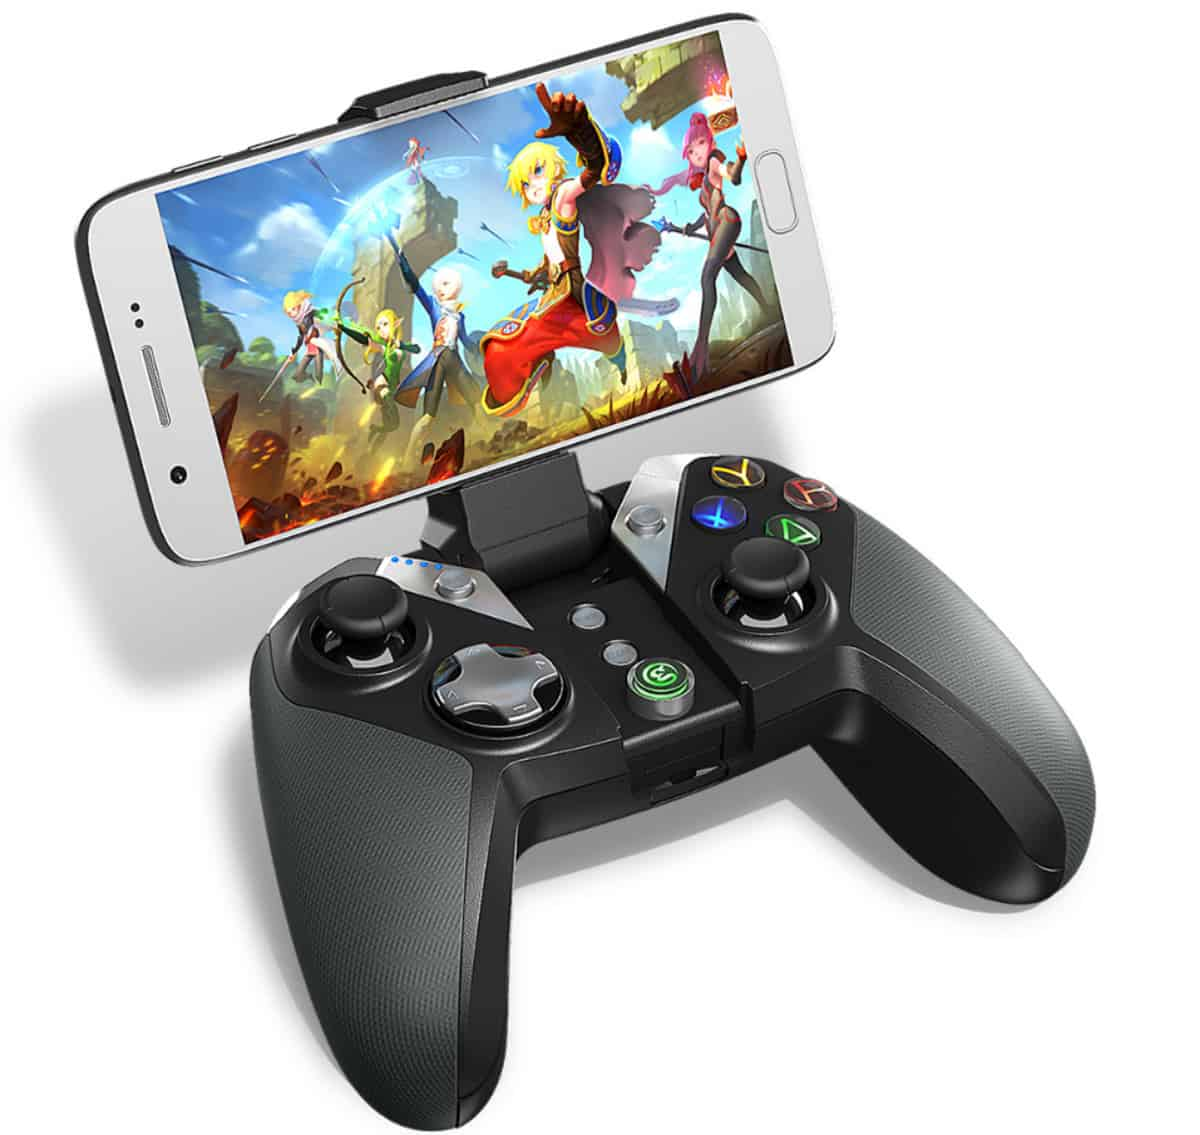 Mobile Gaming takes the first place